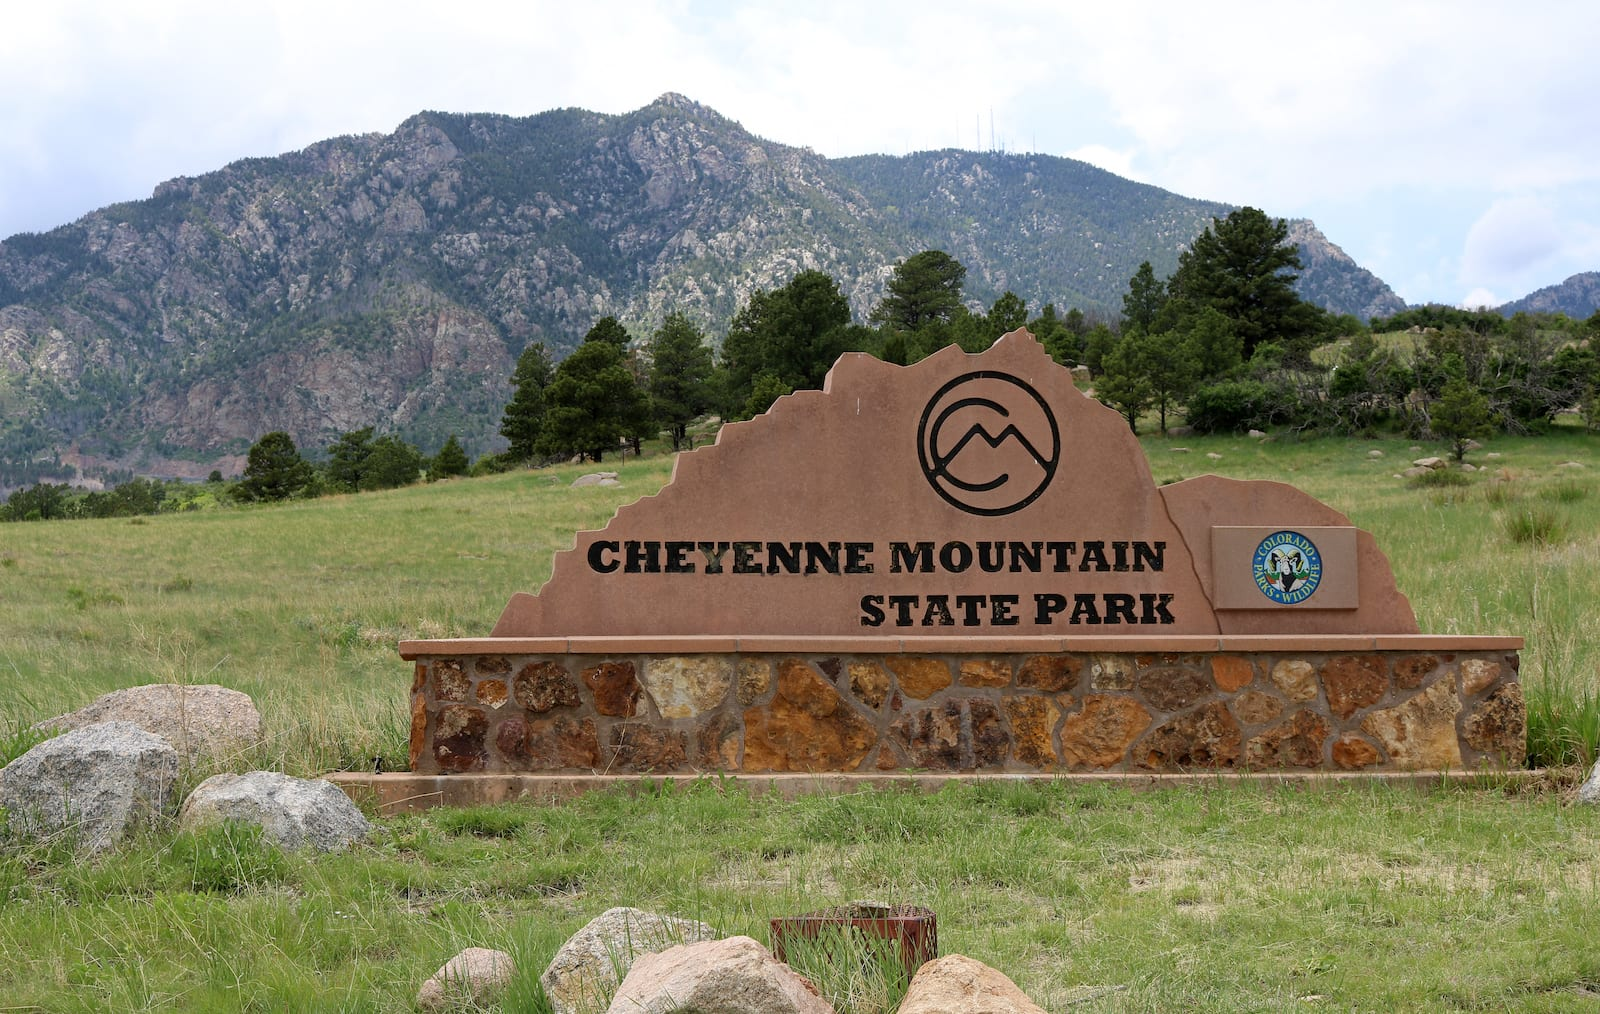 Cheyenne Mountain State Park In Colorado Springs, Colorado